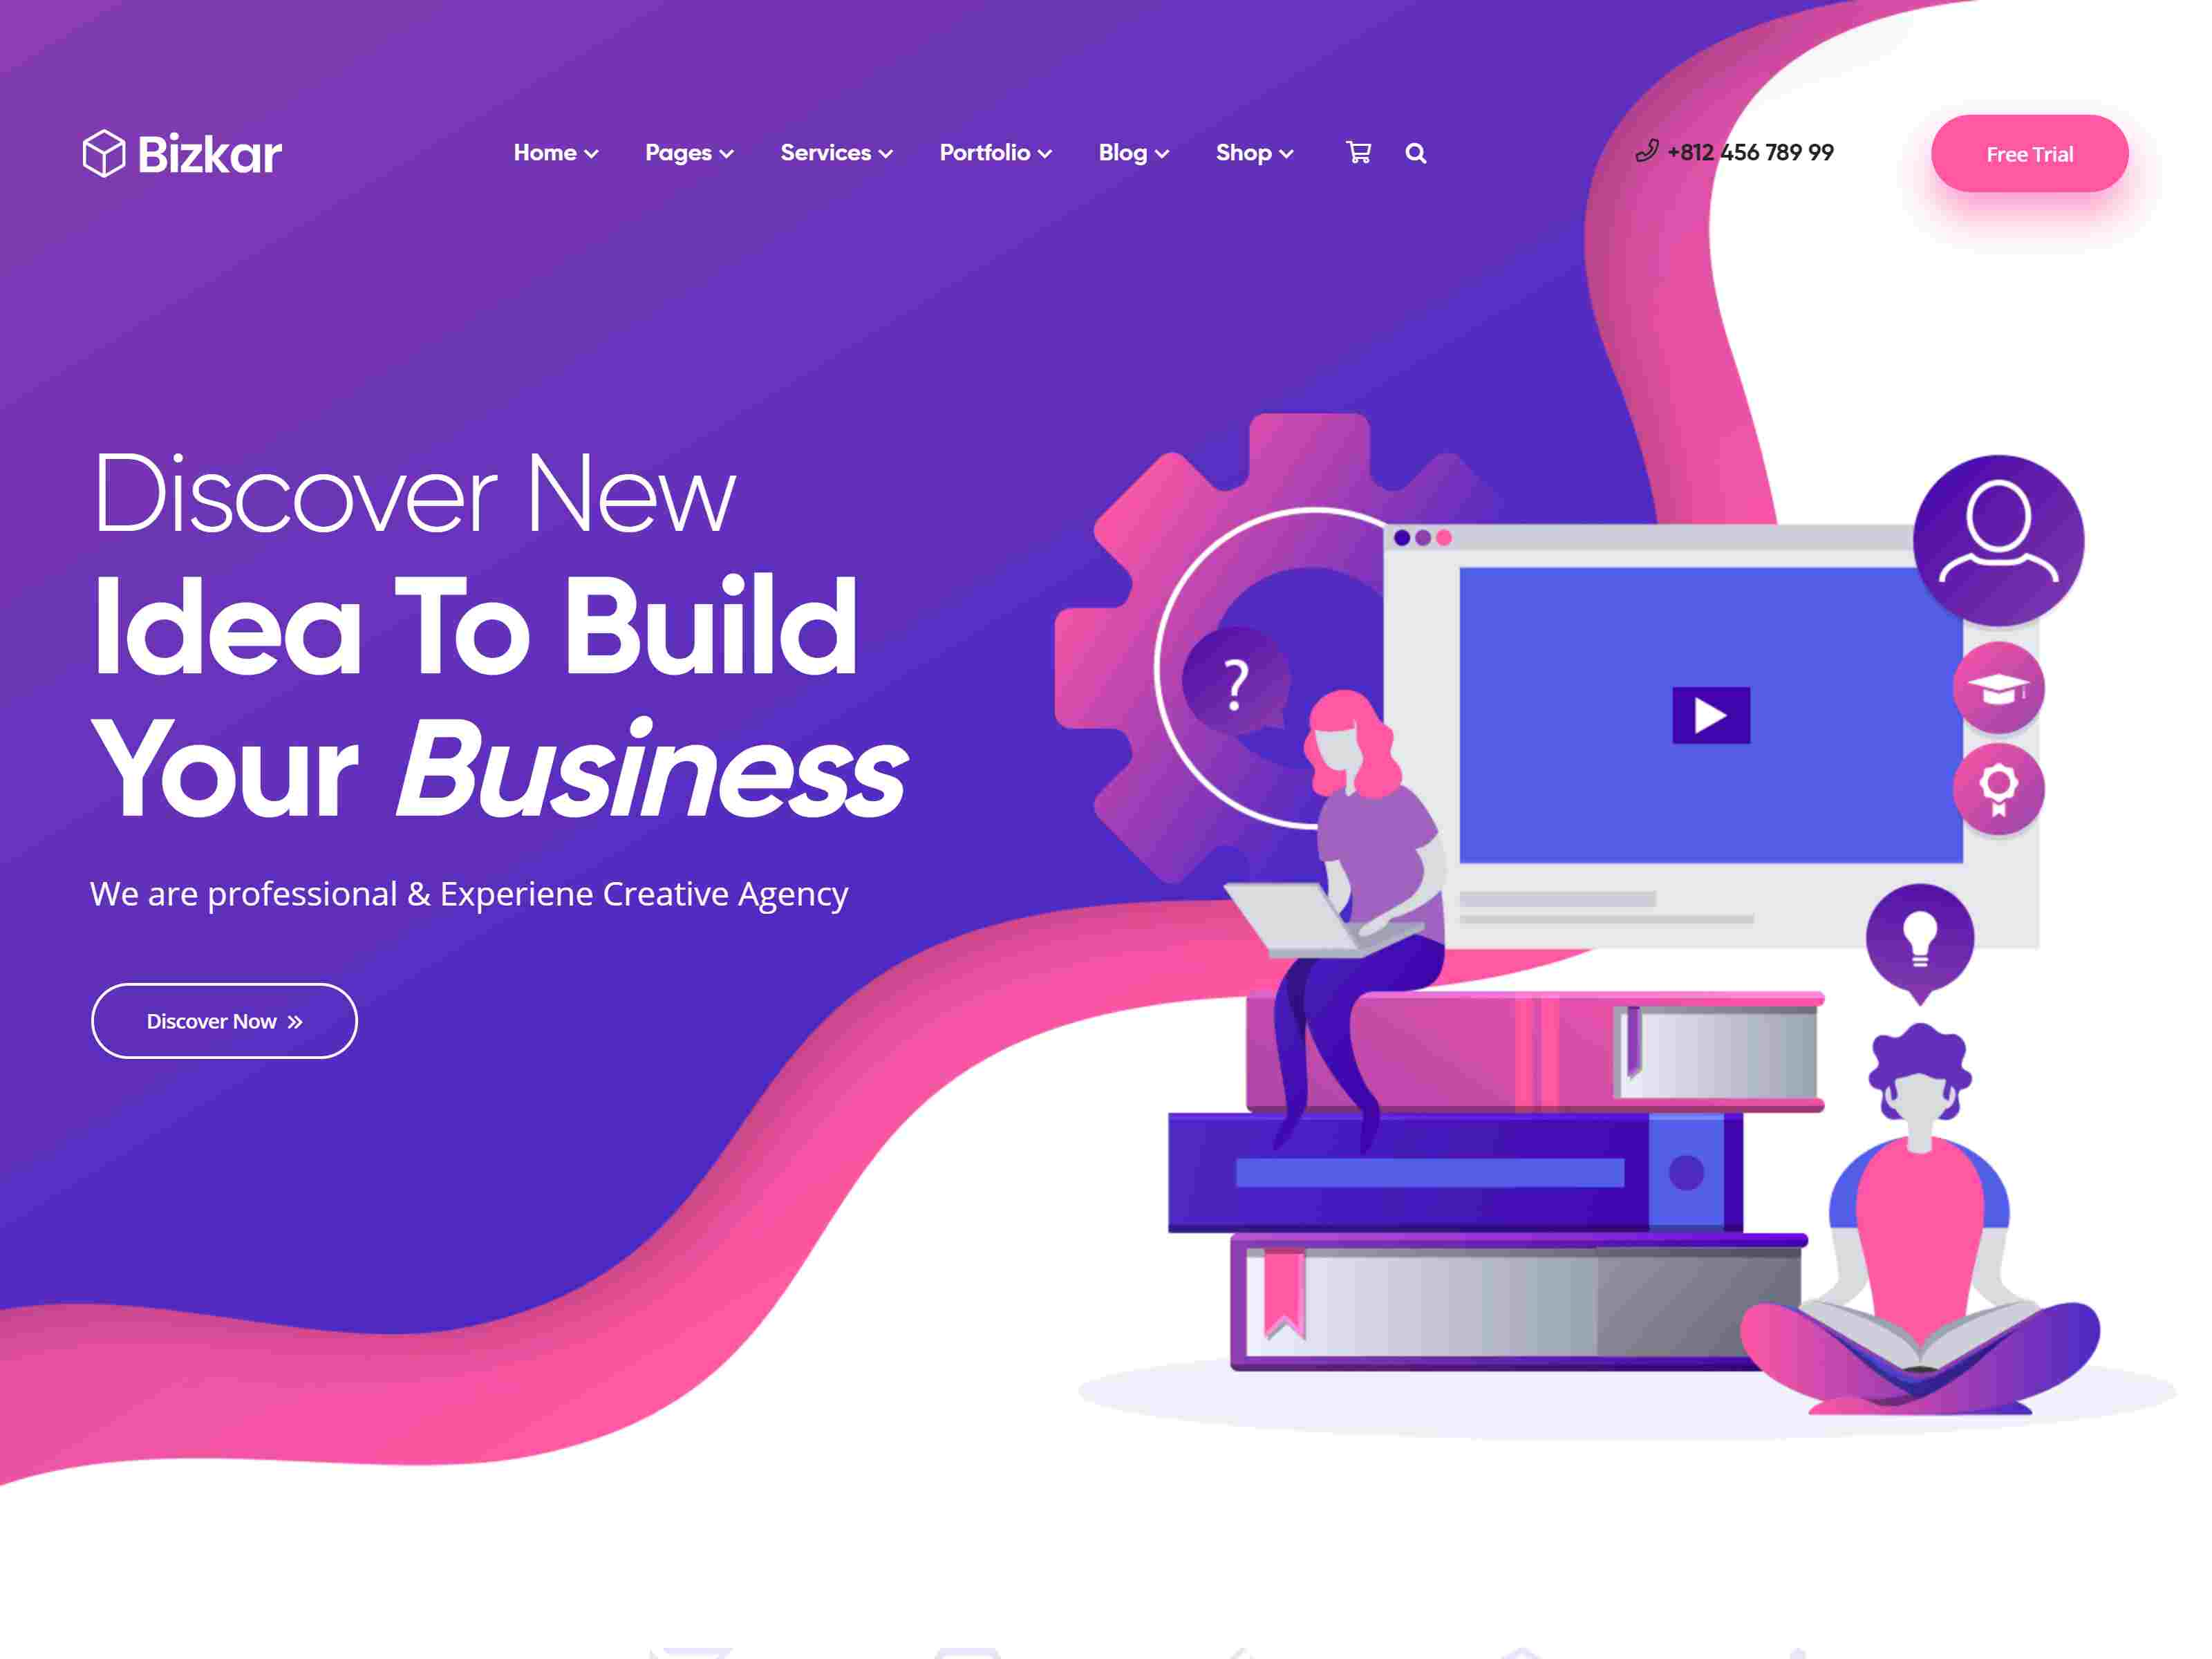 Bizkar - Creative Agency WordPress Theme